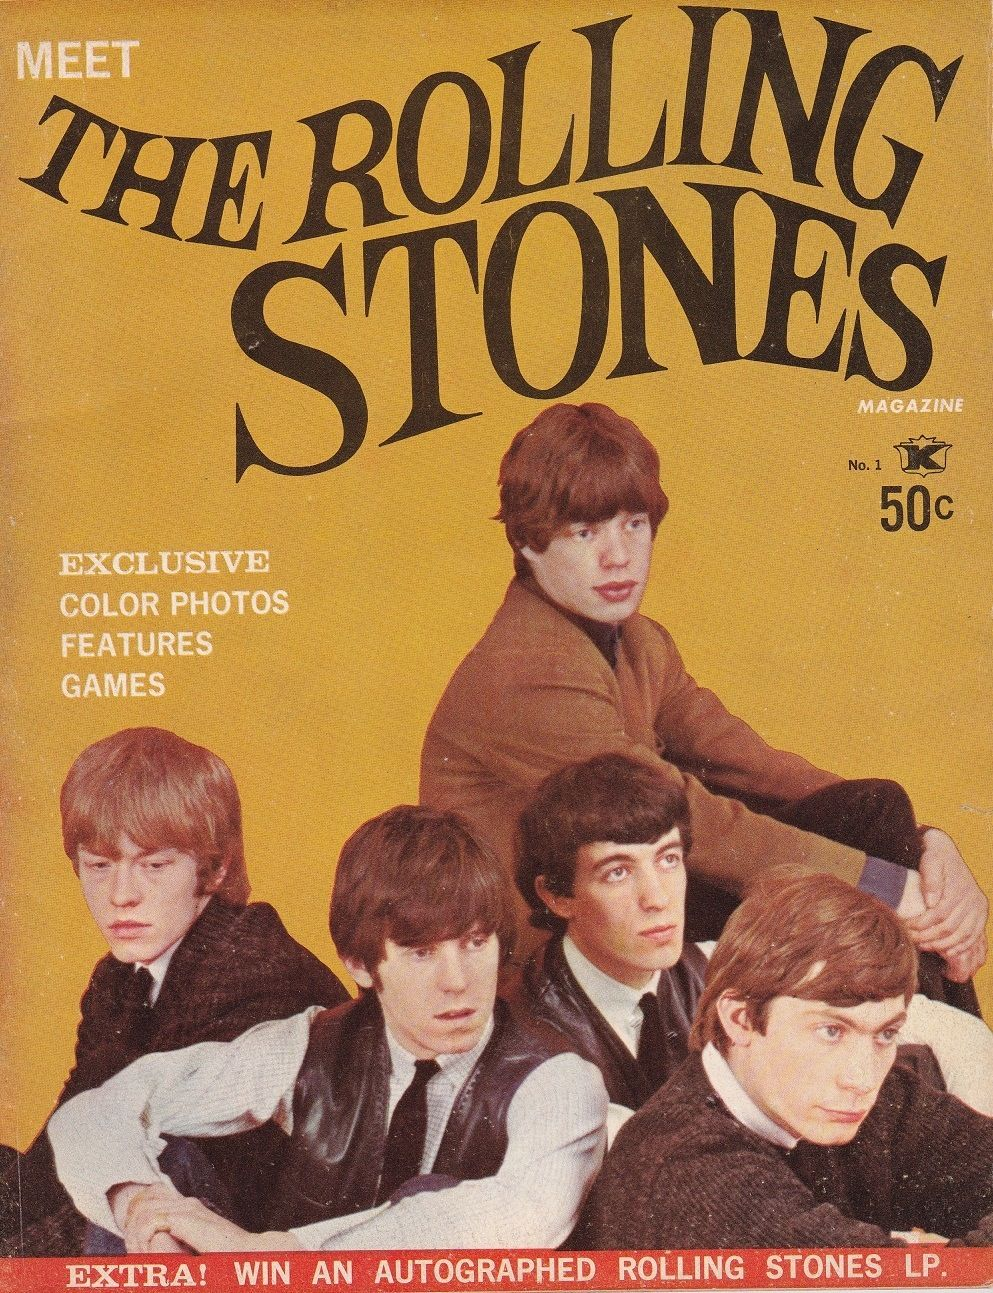 Magazine featuring the Rolling Stones, early 1960's | Brian